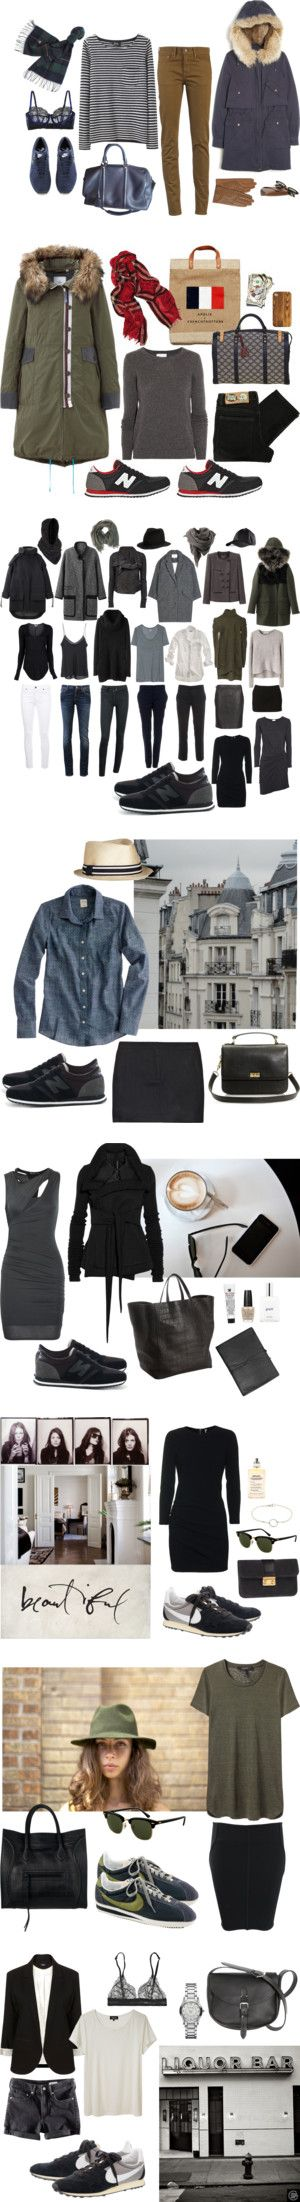 """Sneakers"" by coffeestainedcashmere ❤ liked on Polyvore:"